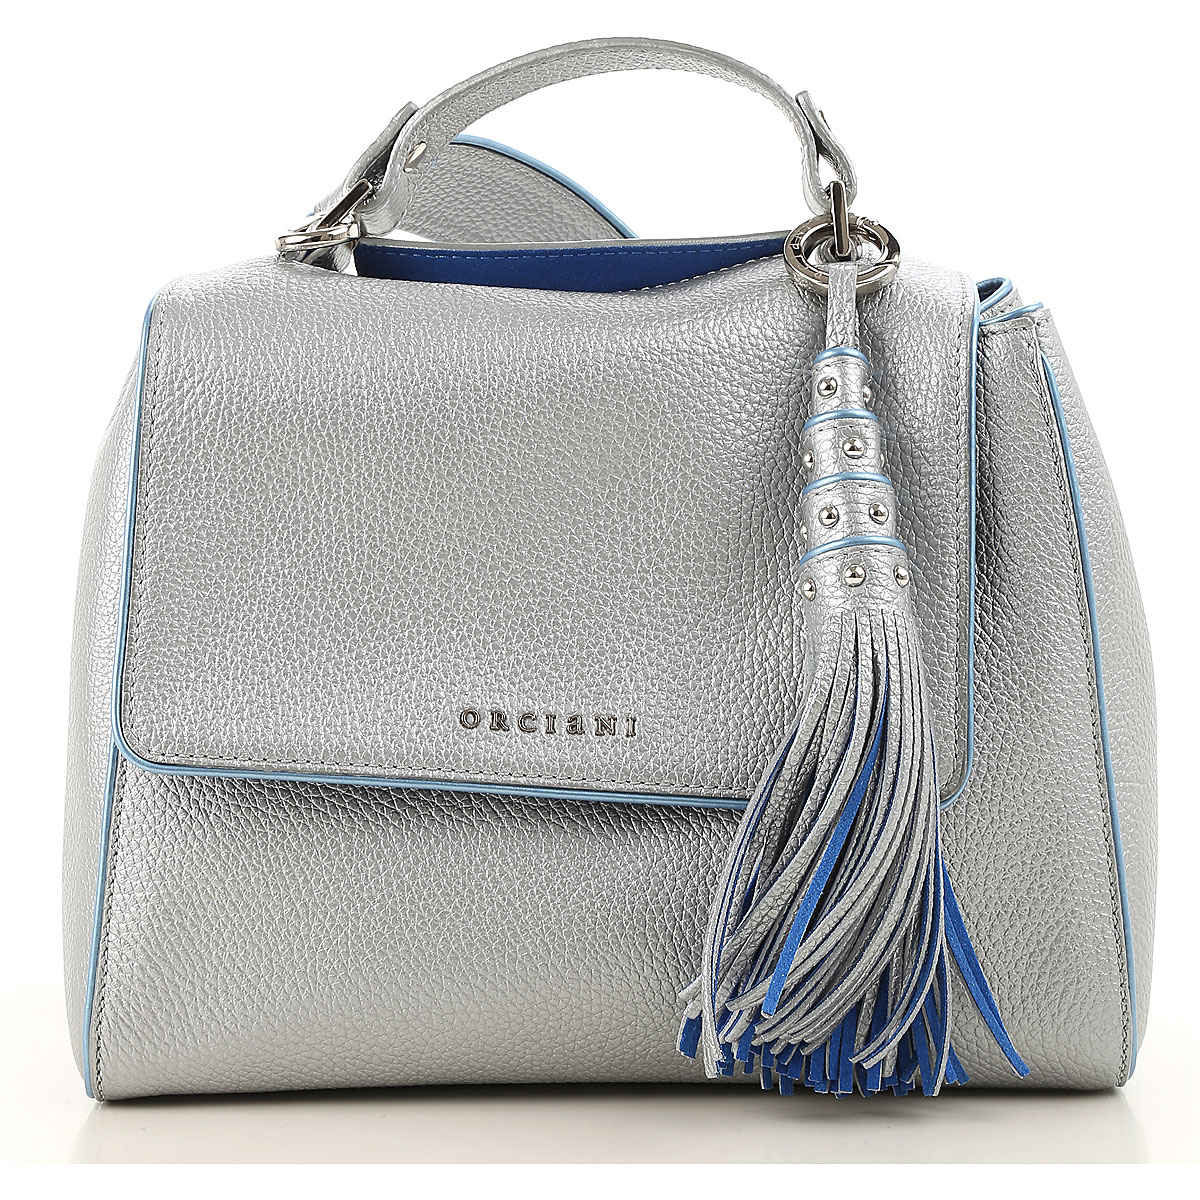 Orciani Shoulder Bag for Women, Silver, Leather, 2017 USA-455553